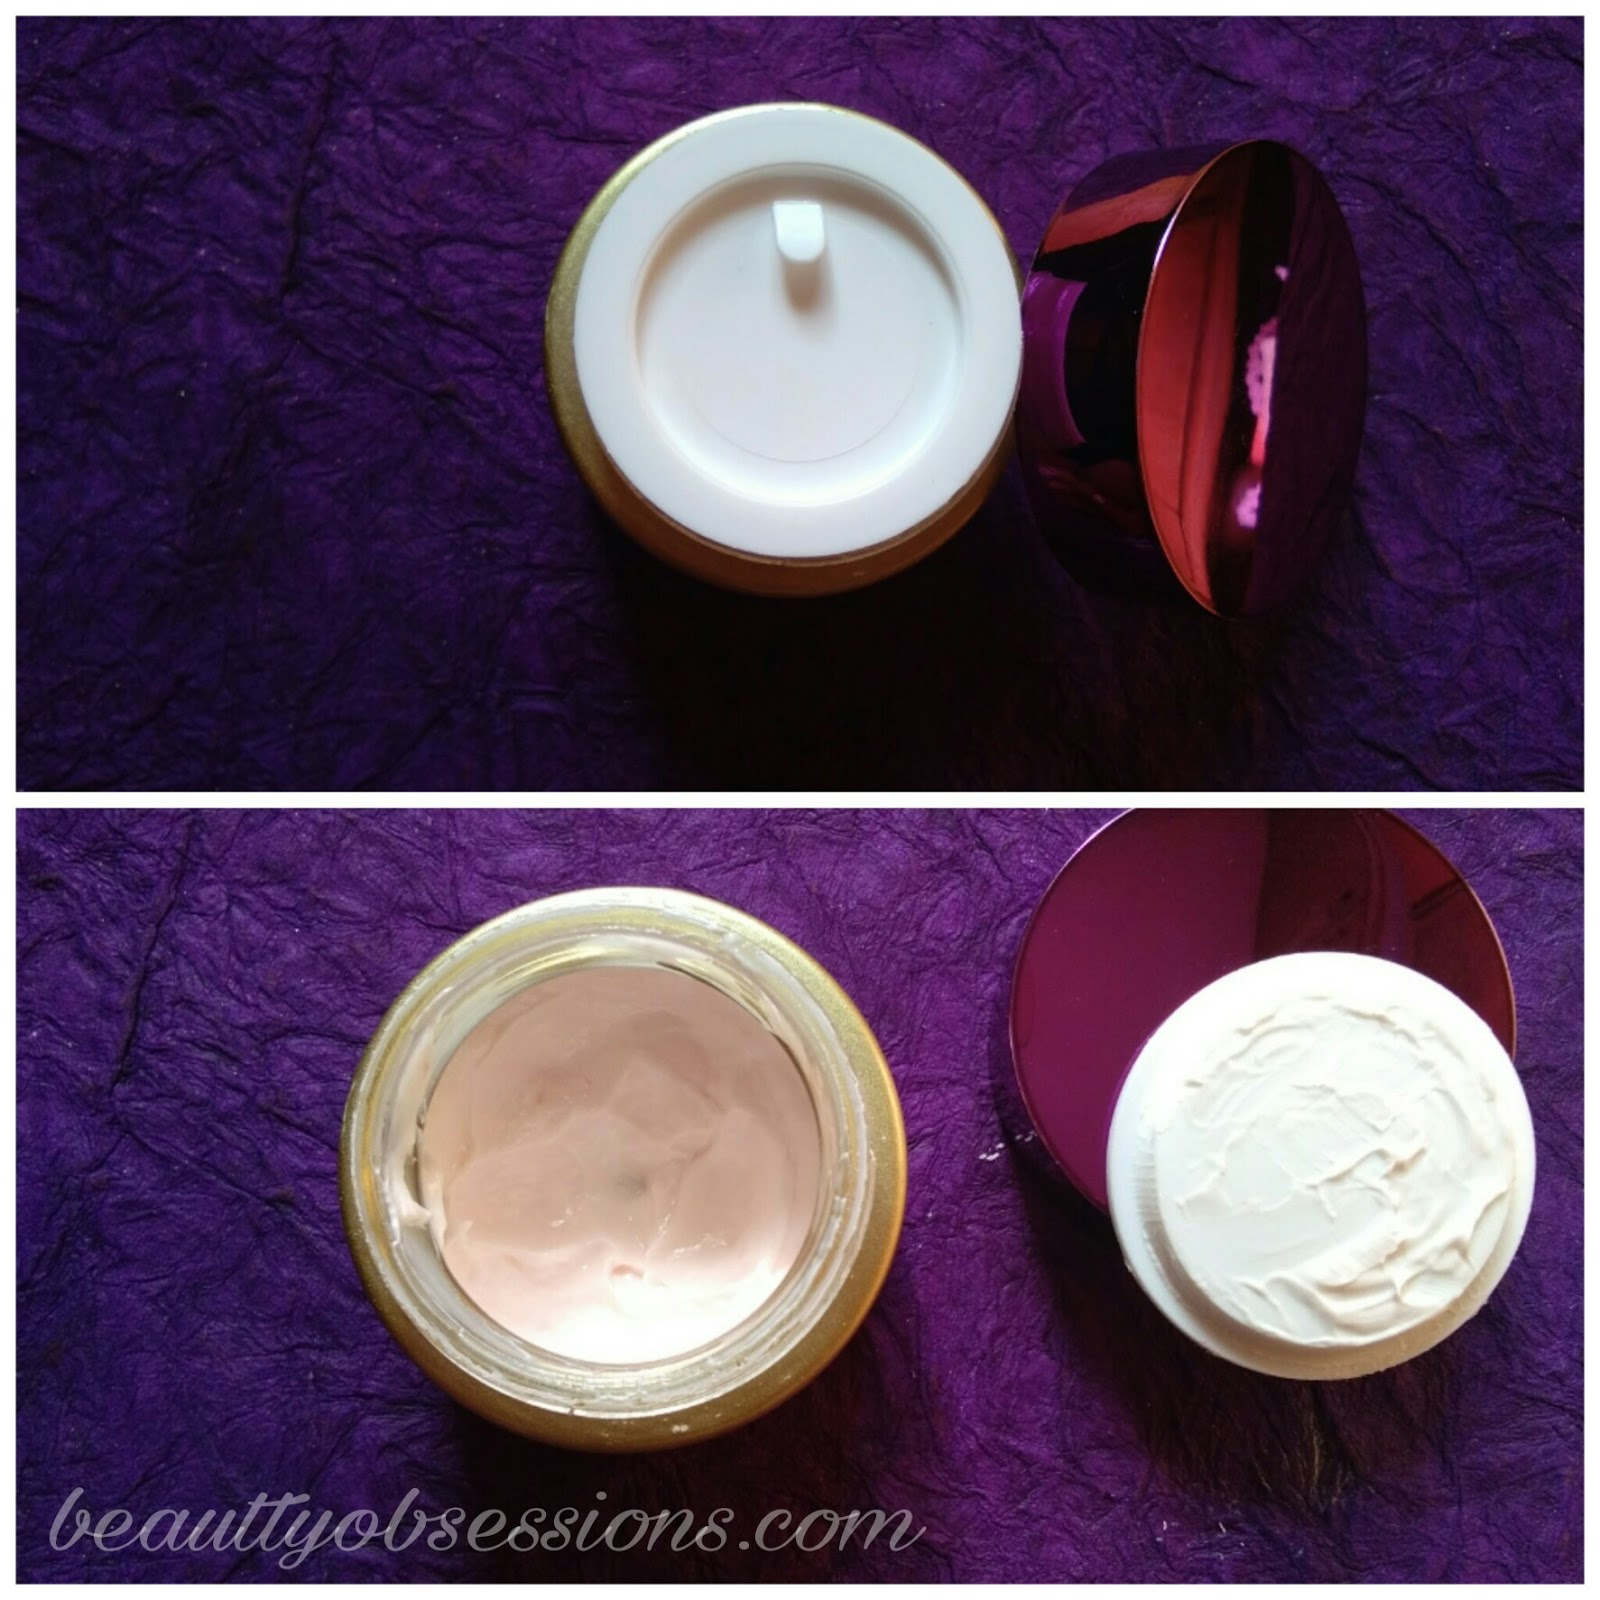 Lotus Anti Aging Cream Review